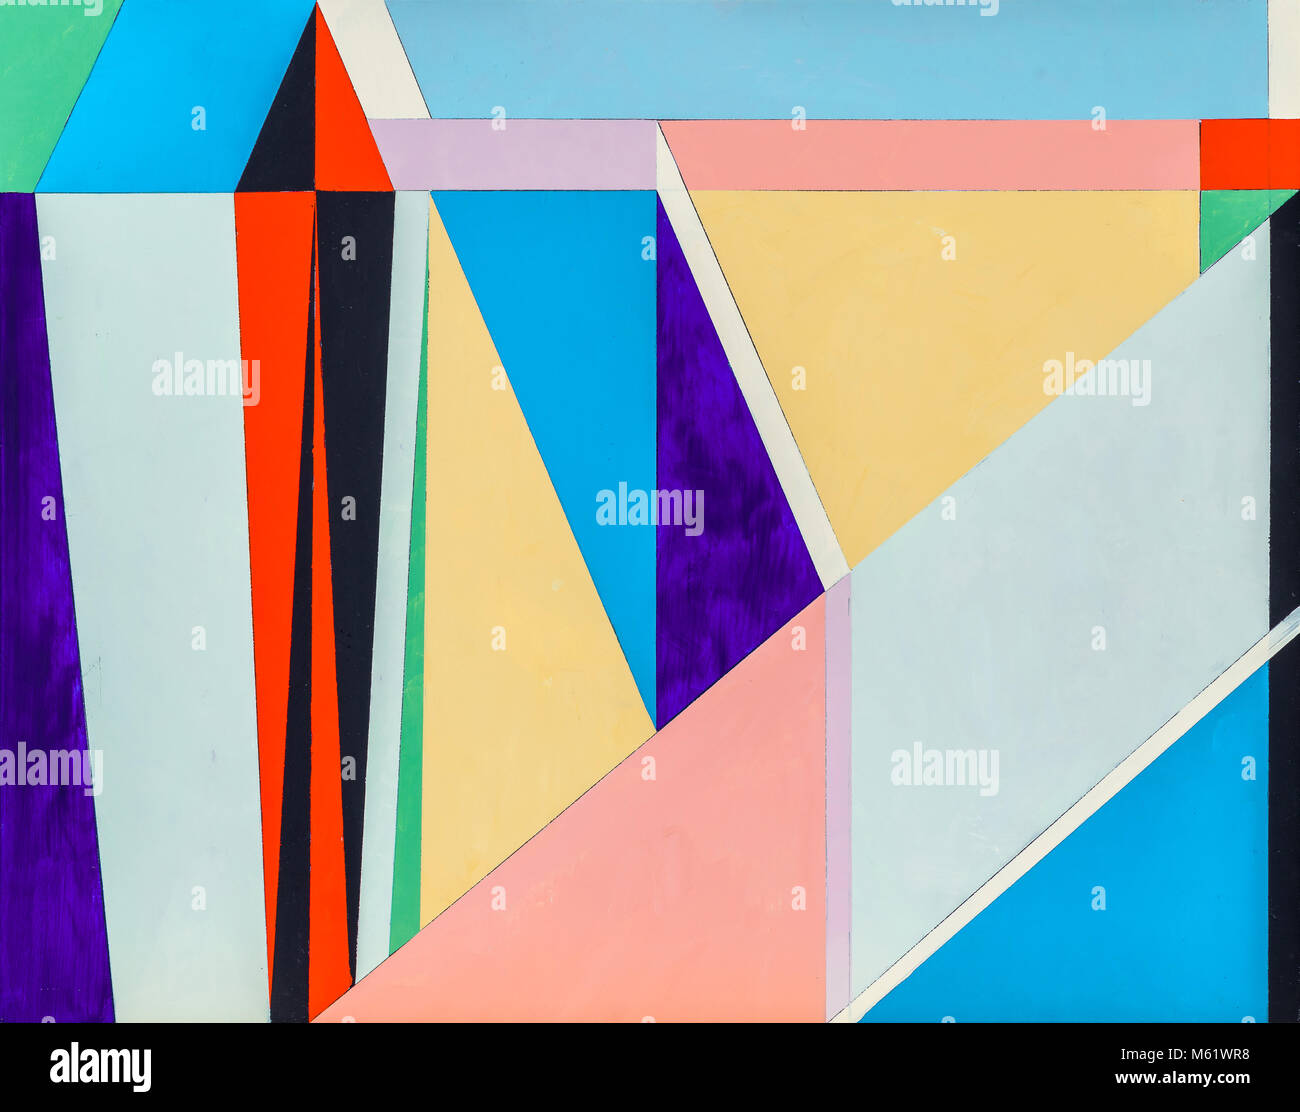 An abstract painting, geometric abstraction with many triangular elements. - Stock Image